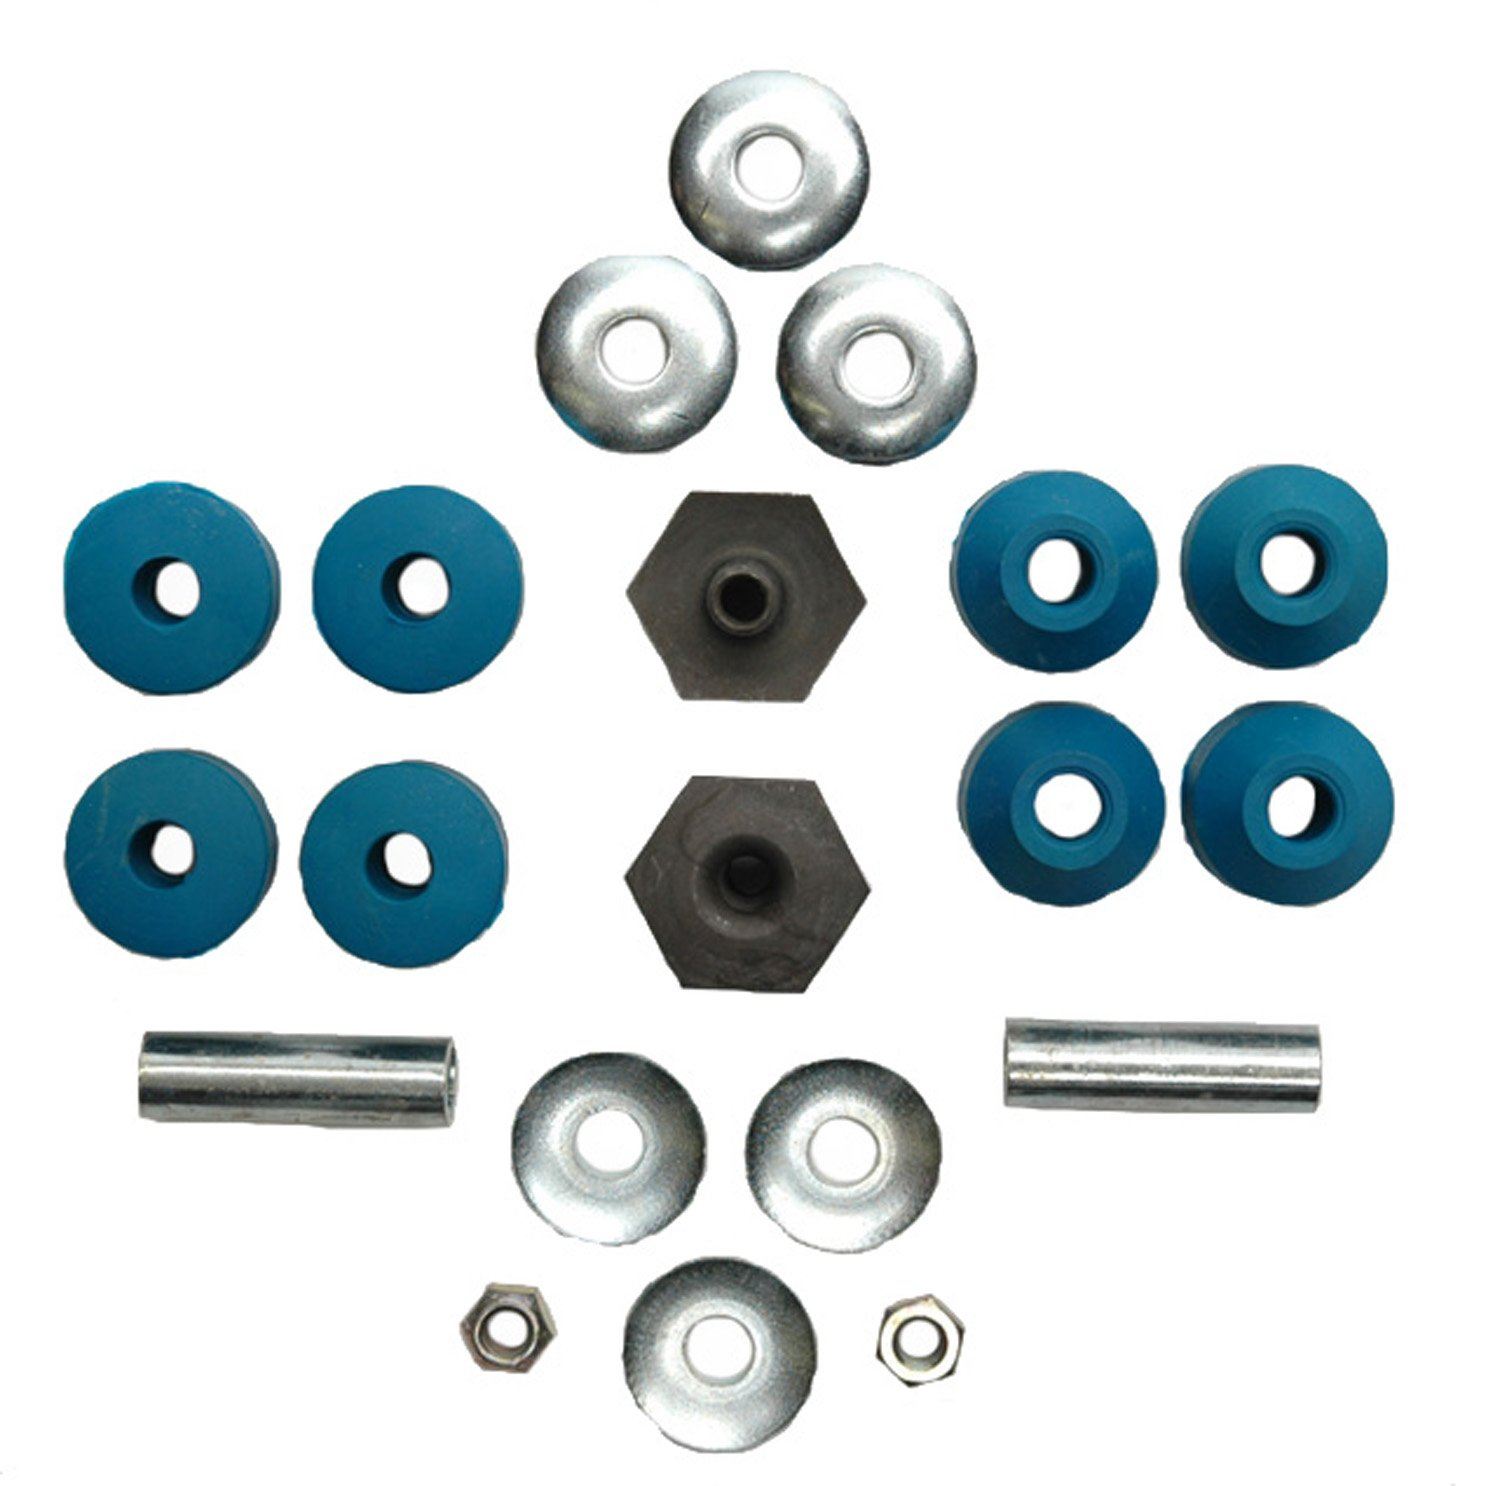 ACDelco 45G0006 Professional Front Suspension Stabilizer Bar Link Kit with Bushings, Washers, and Nuts